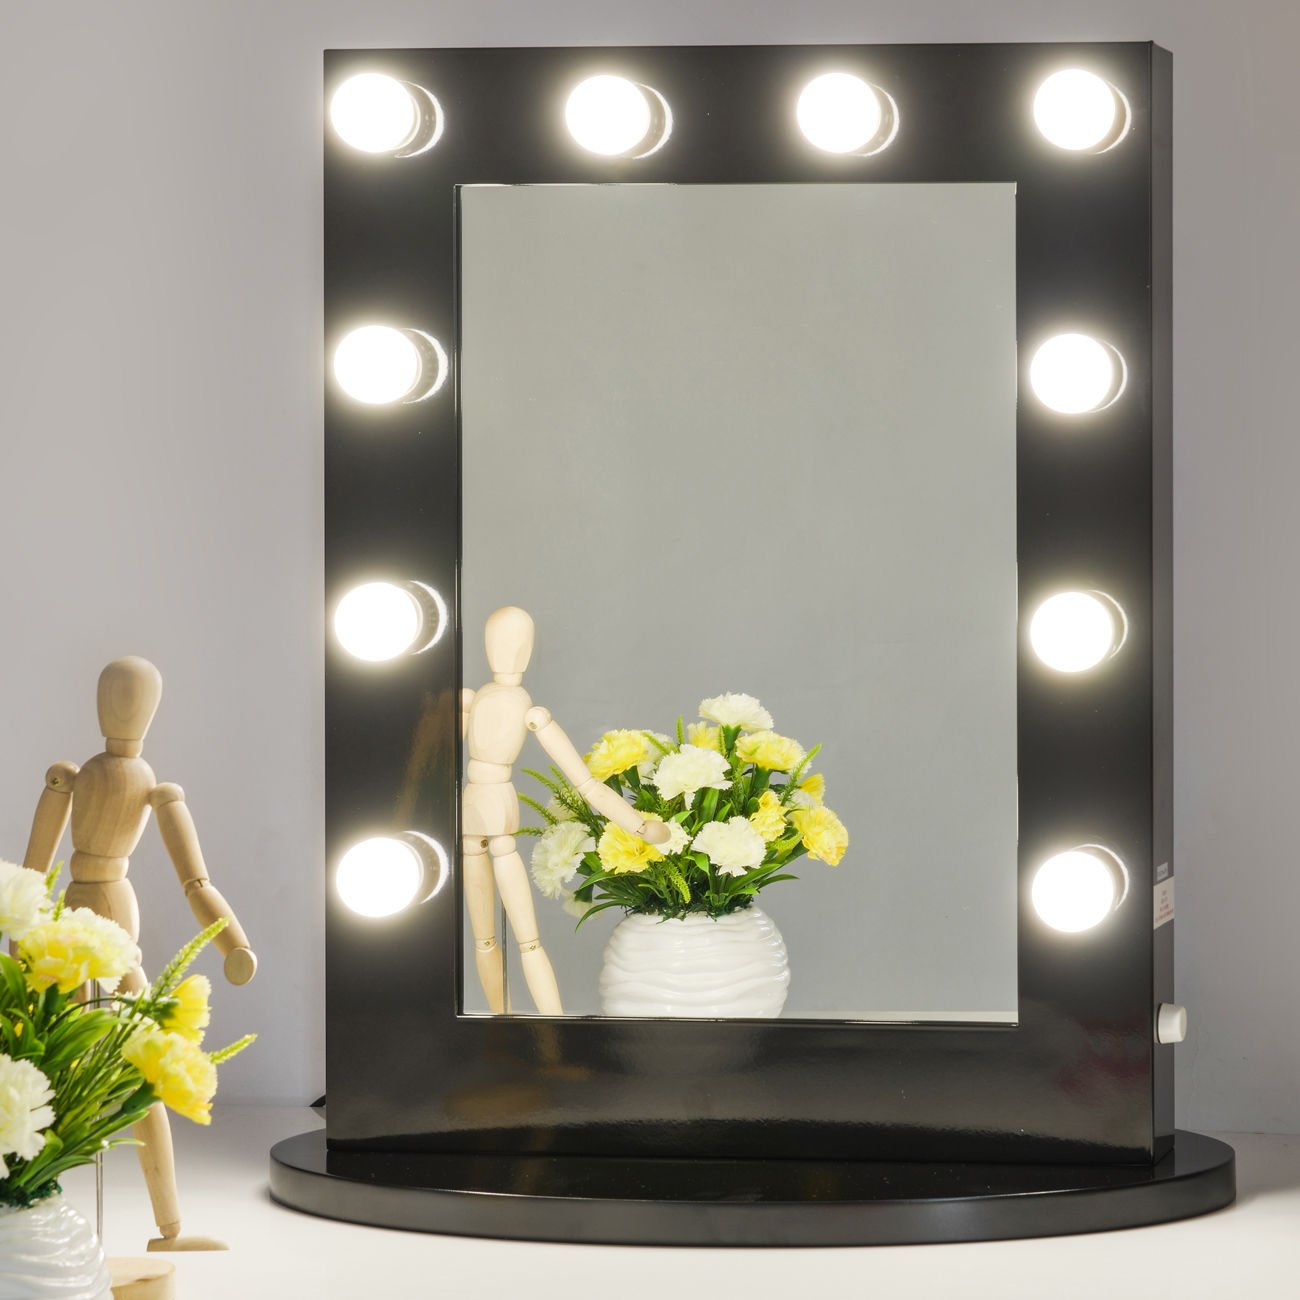 Amazon chende black hollywood makeup vanity mirror with light amazon chende black hollywood makeup vanity mirror with light tabletops lighted mirror with dimmer led illuminated cosmetic mirror with led dimmable aloadofball Image collections